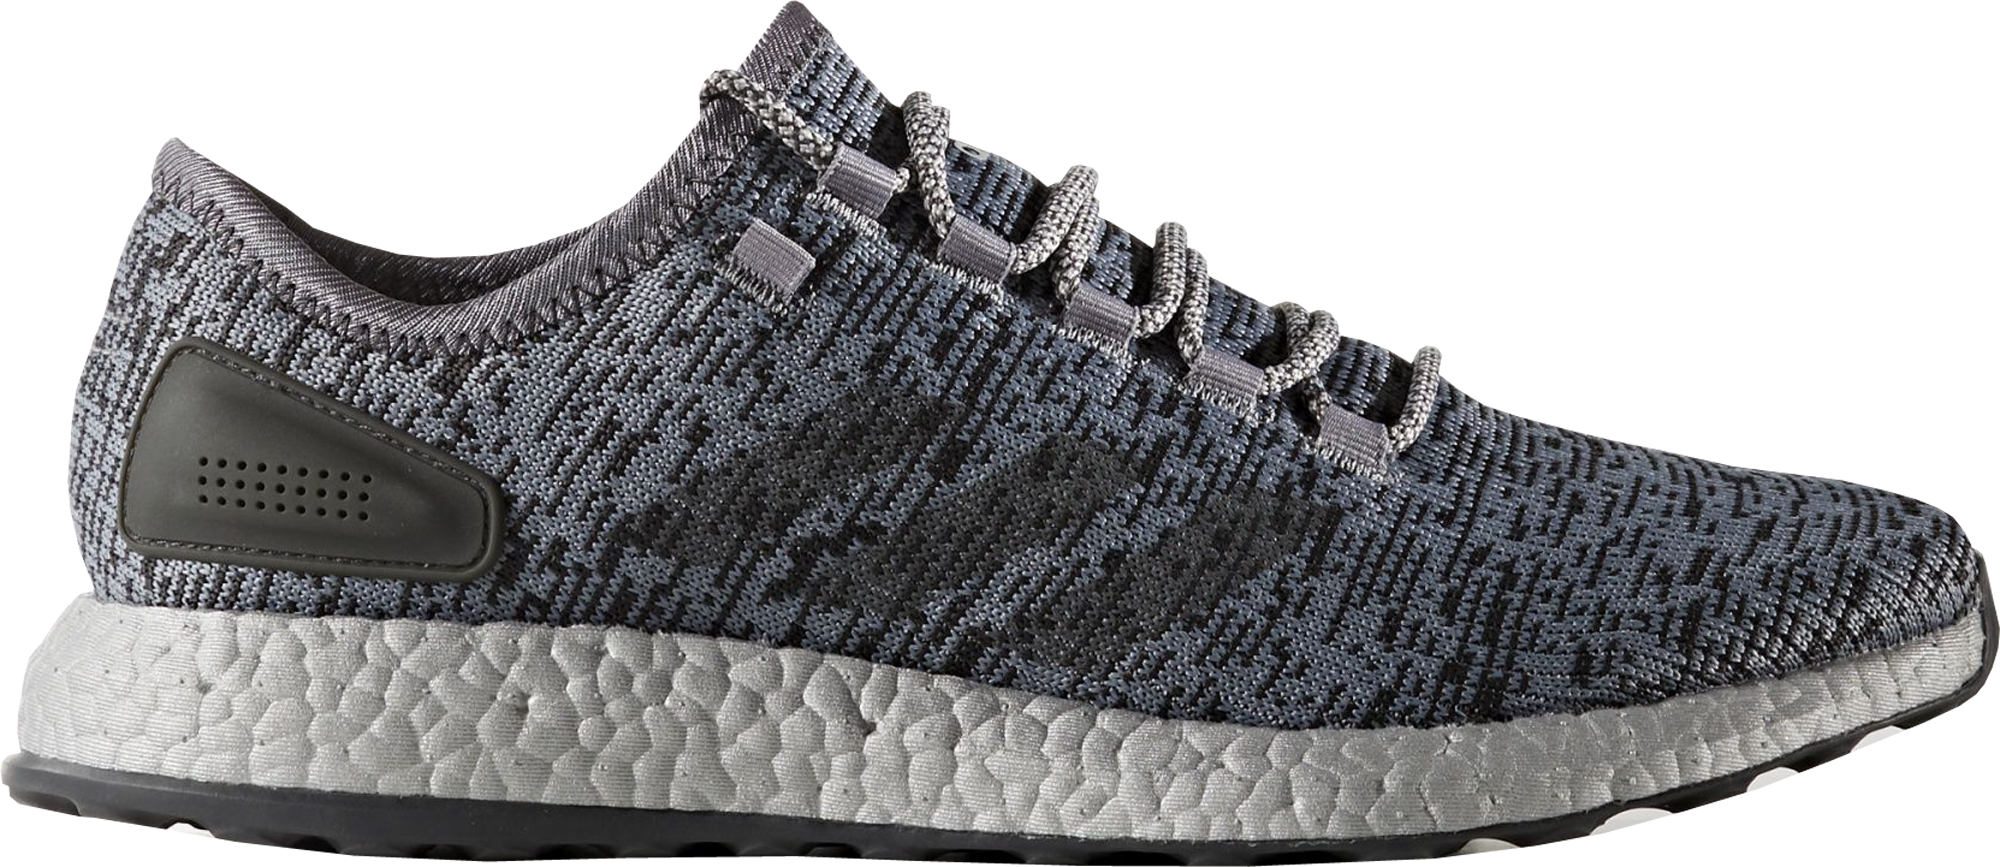 adidas Pure Boost Grey - S80703